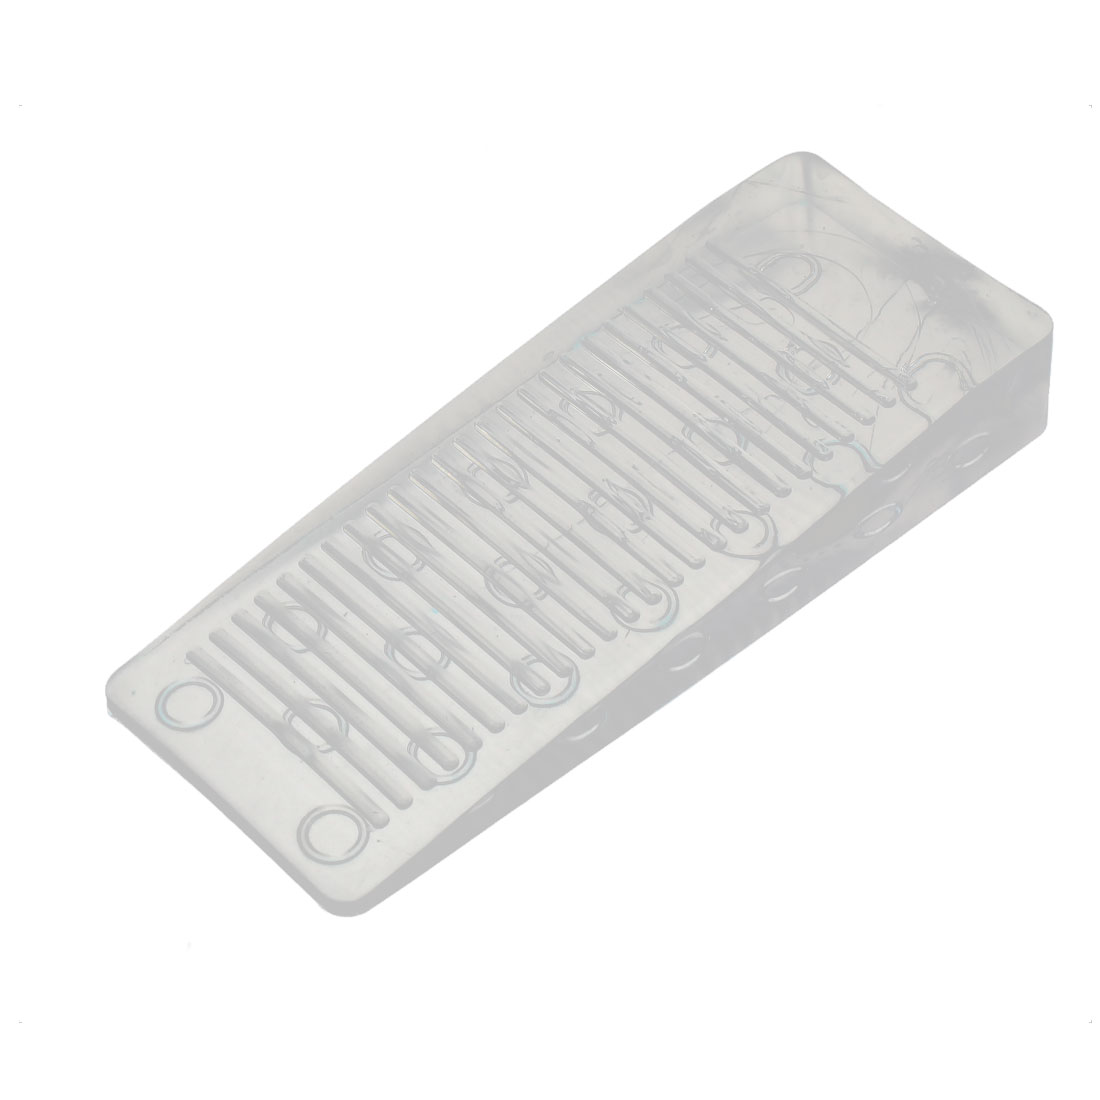 Home Office Clear Rubber Door Wedge Stopper Block 98x40x15mm